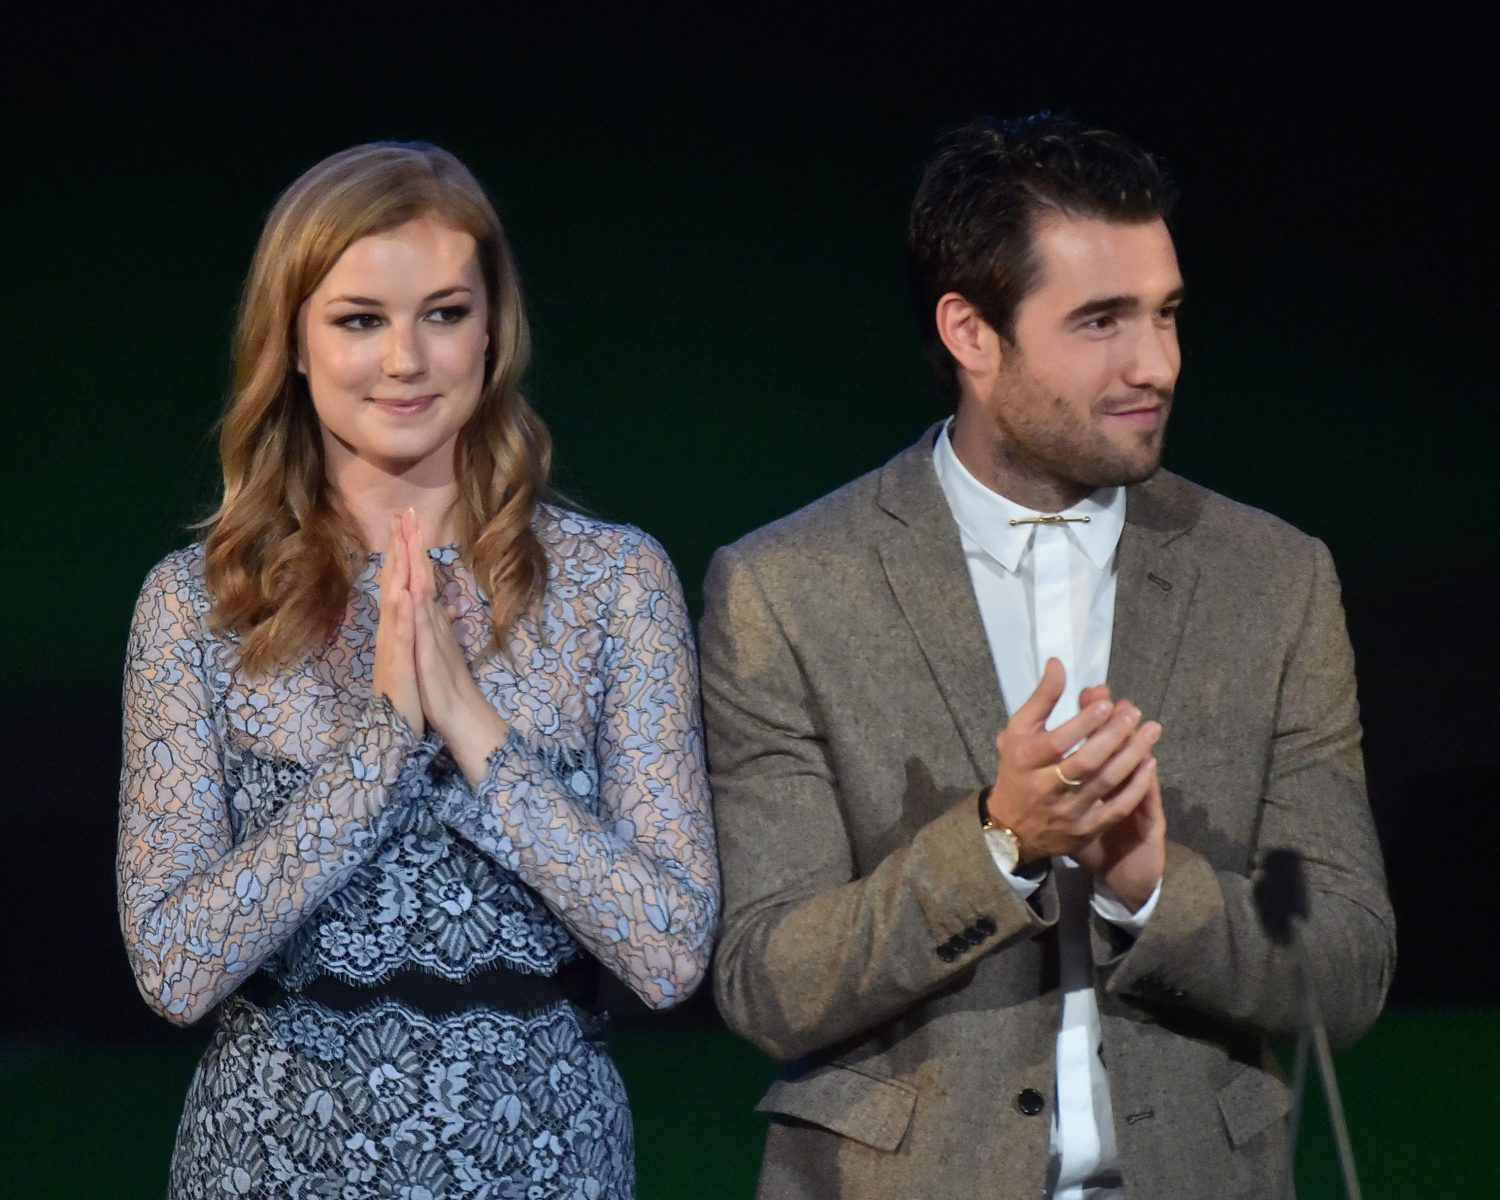 Actors Emily VanCamp and Joshua Bowman